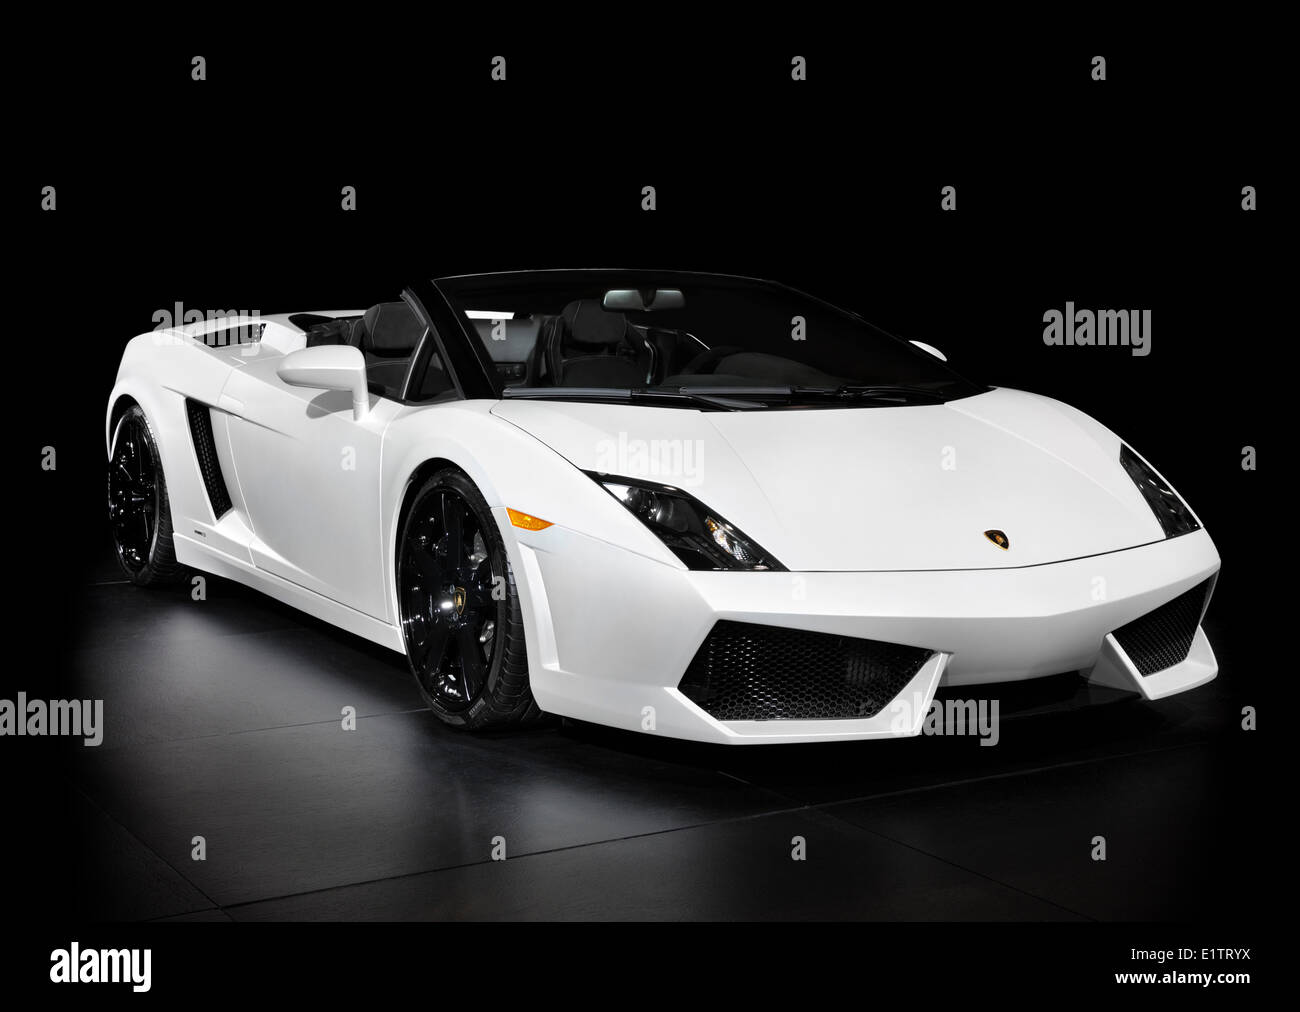 White Lamborghini Gallardo Lp560 4 Spyder Super Car Isolated On